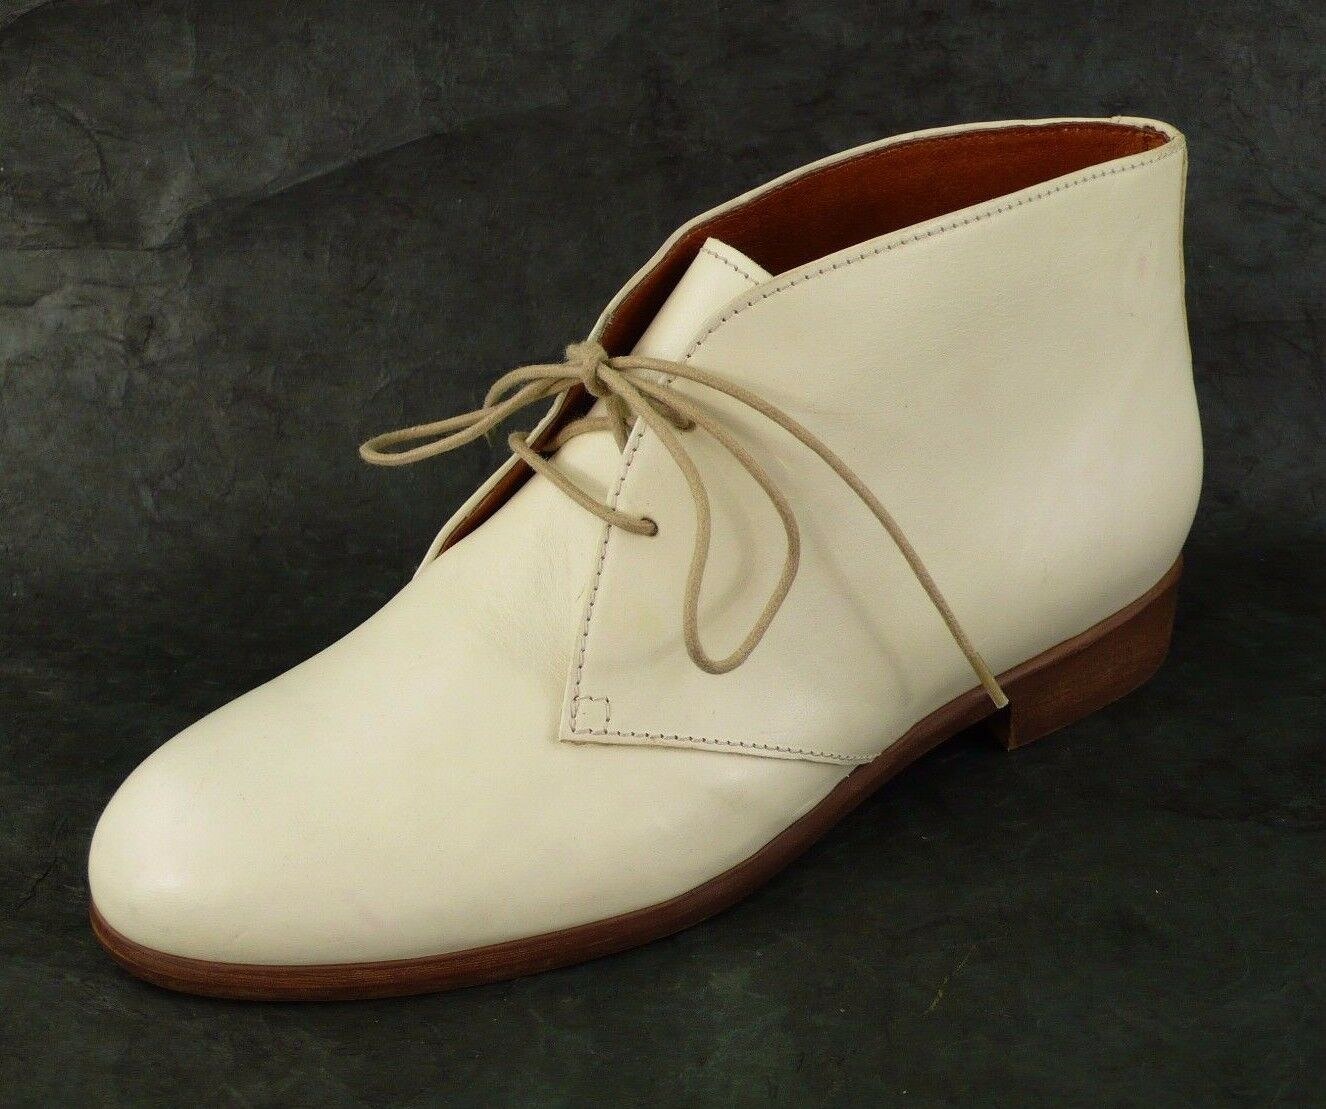 NEW MADEWELL / J. CREW LEATHER ANKLE BOOTS FRESH CREAM SIZE 7 ITALY Retail $238